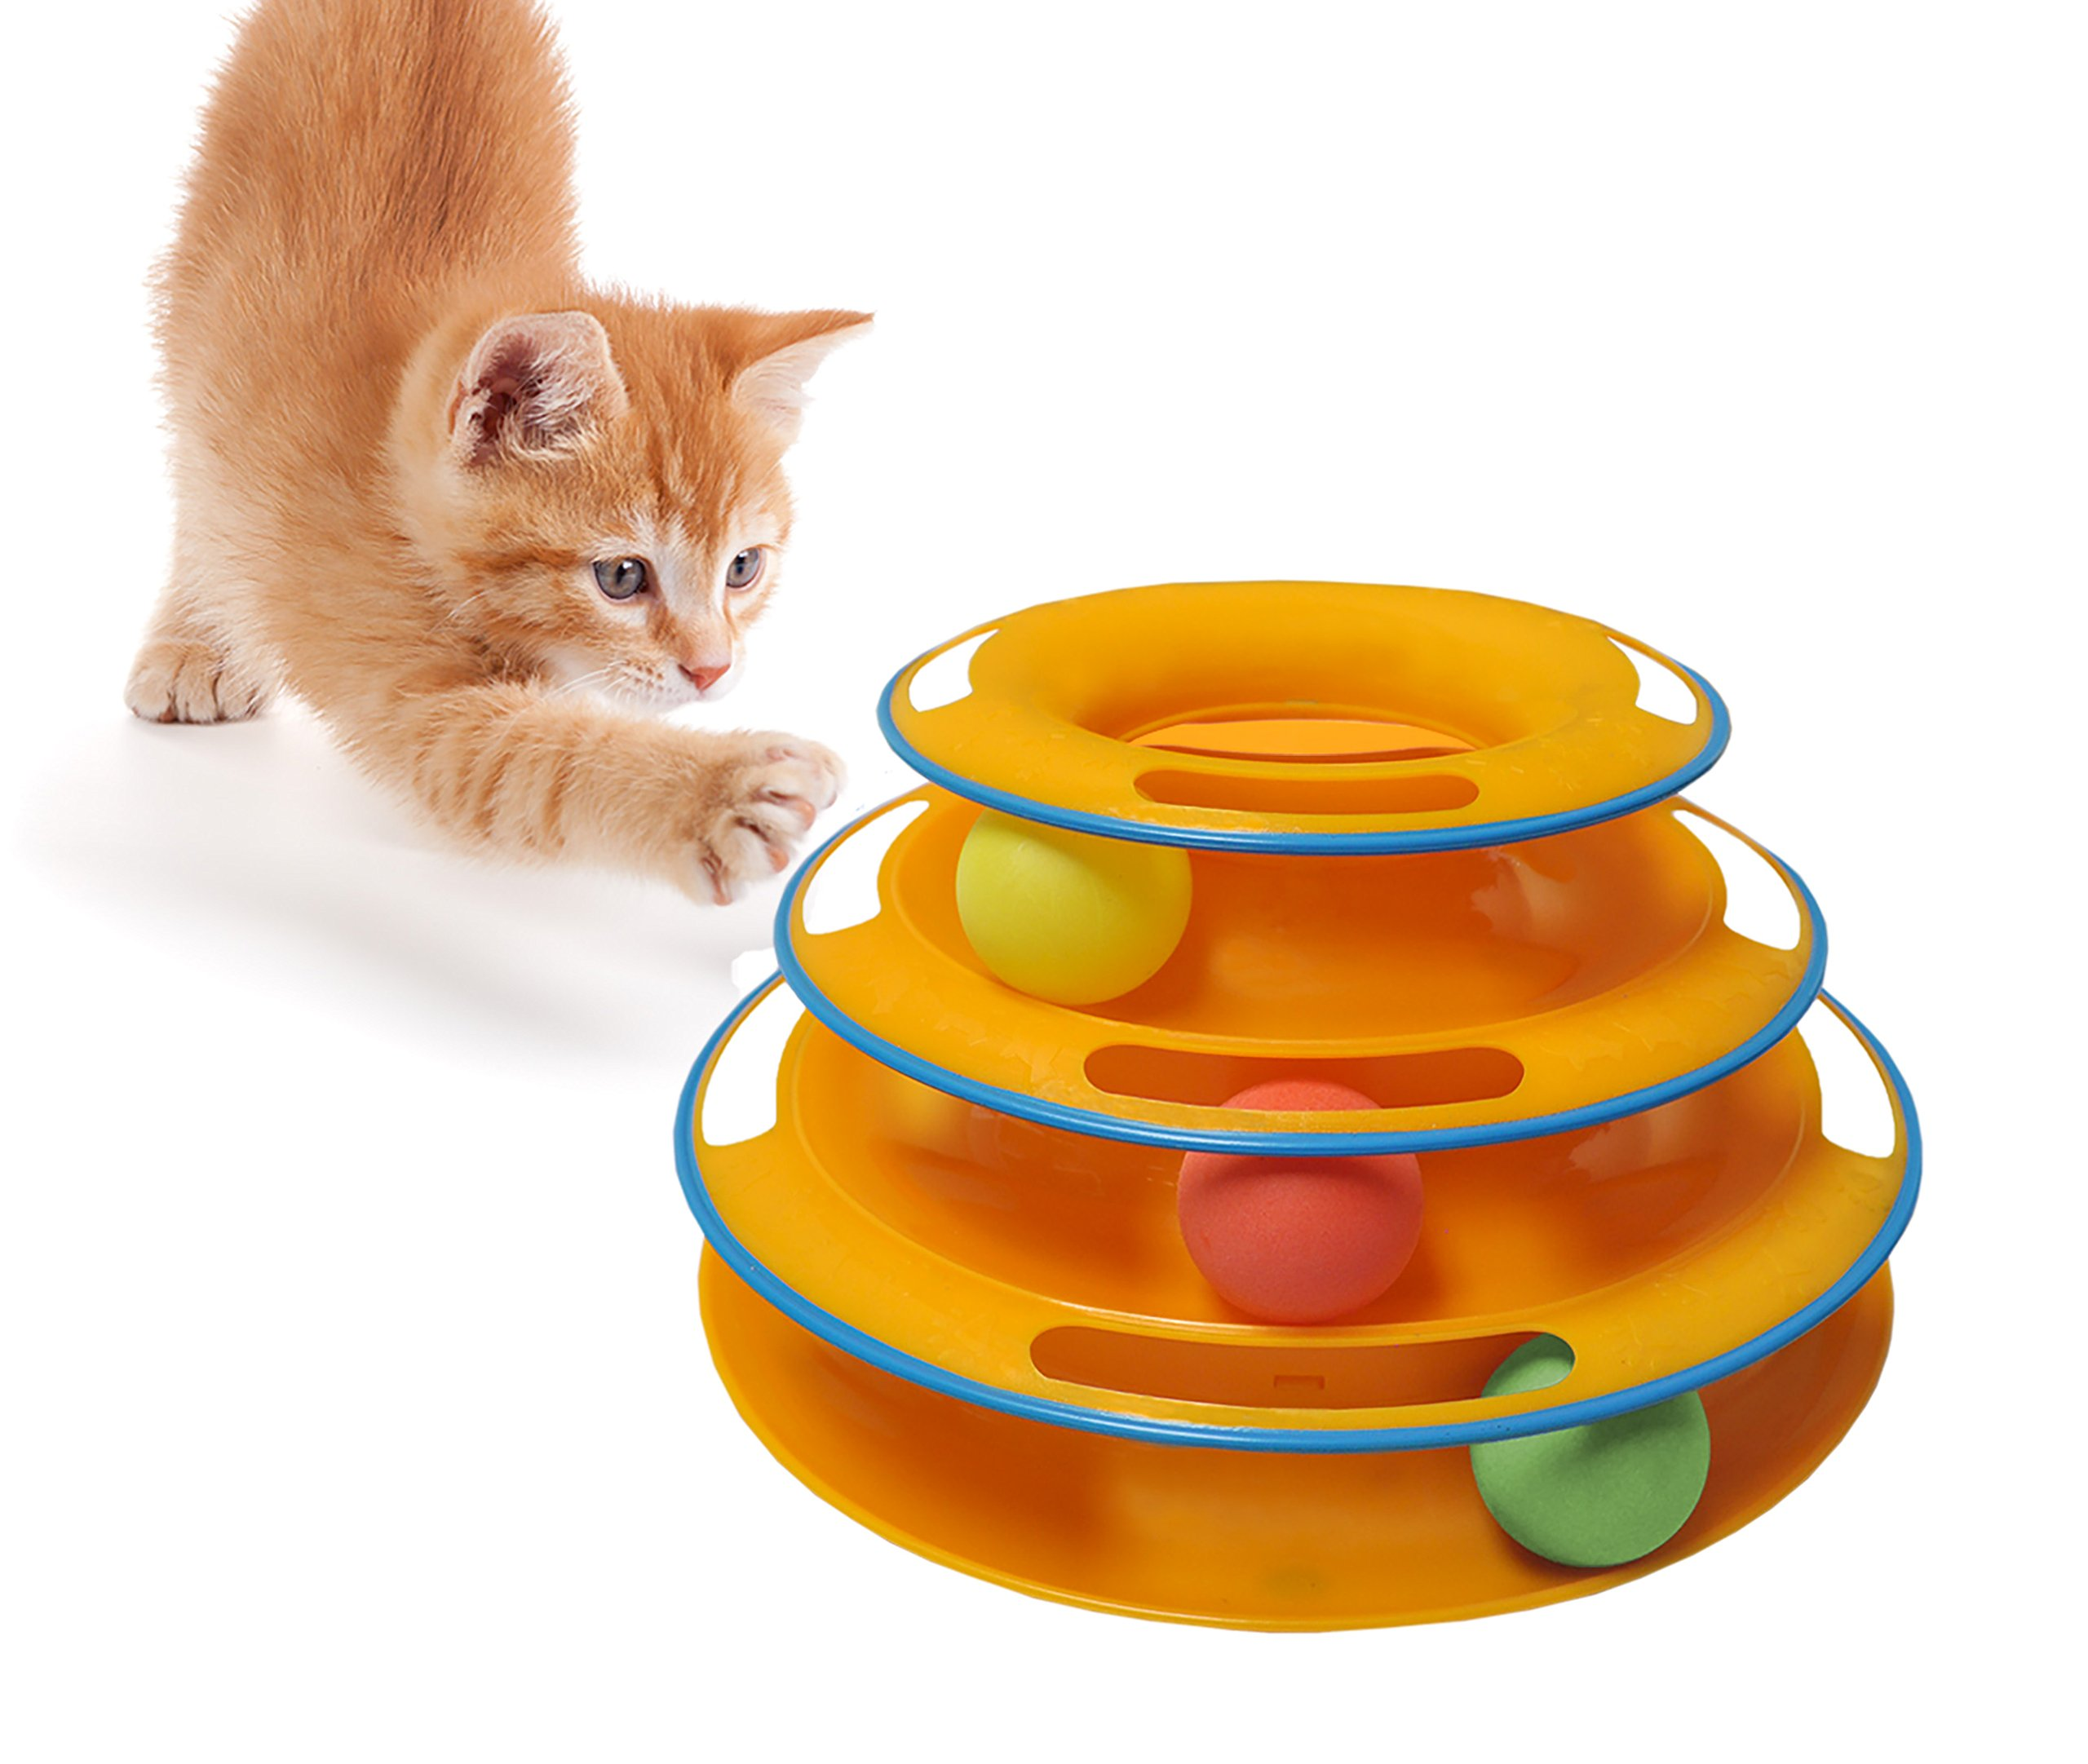 Purrfect Feline Titan's Tower - New Safer Bar Design, Interactive Cat Ball Toy, Exerciser Game, Teaser, Anti-Slip, Active Healthy Lifestyle, Suitable for Multiple Cats (Orange)